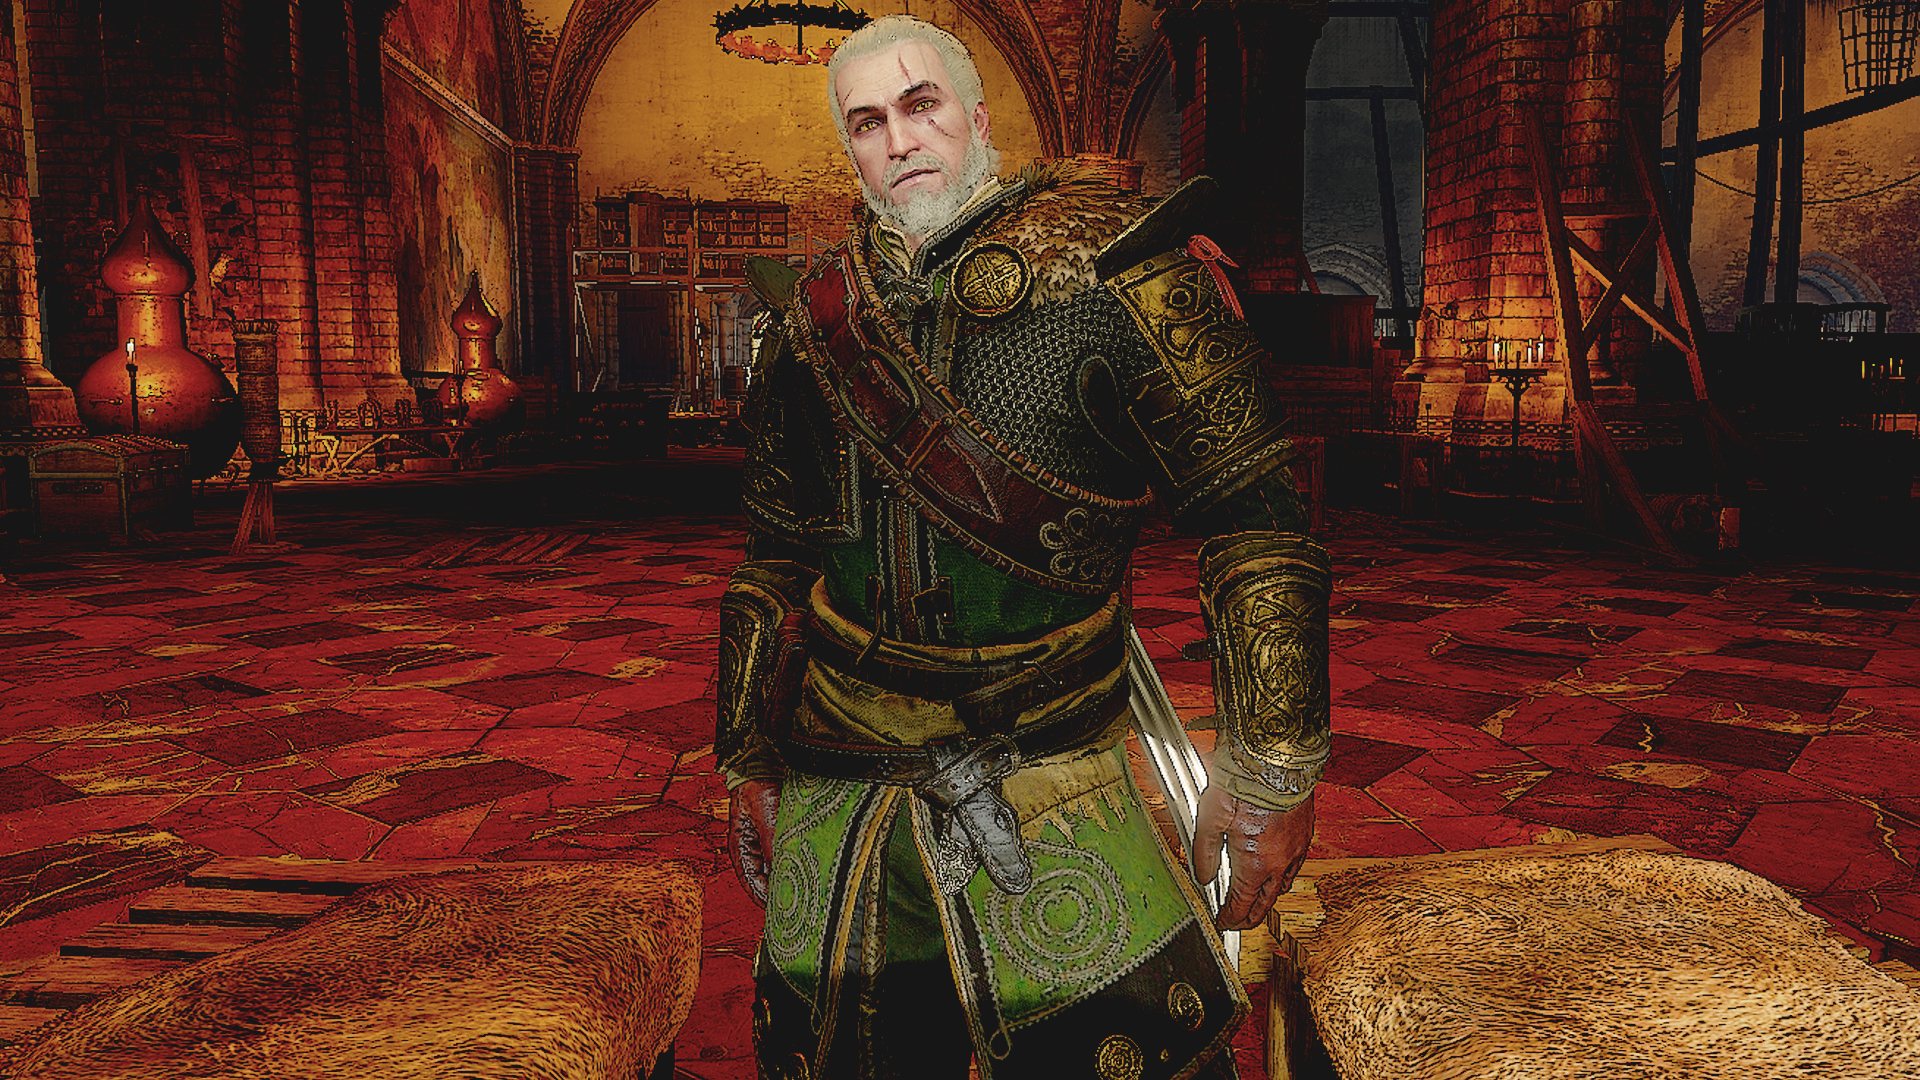 The Witcher 3 armor: Types of armor, crafting, and witcher gear